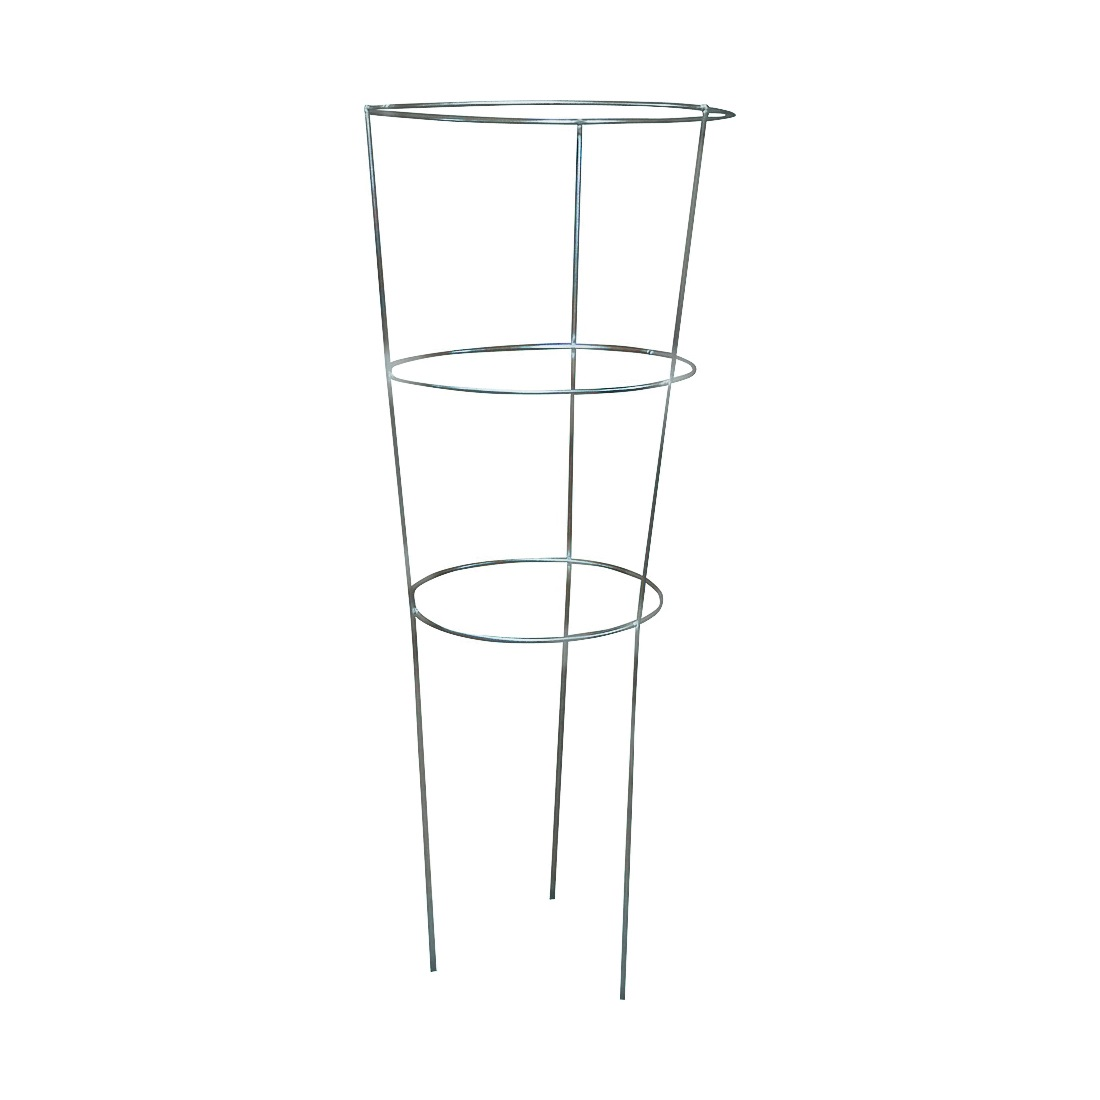 Picture of Glamos Wire 704009 Plant Support, 42 in L, 14 in W, Steel